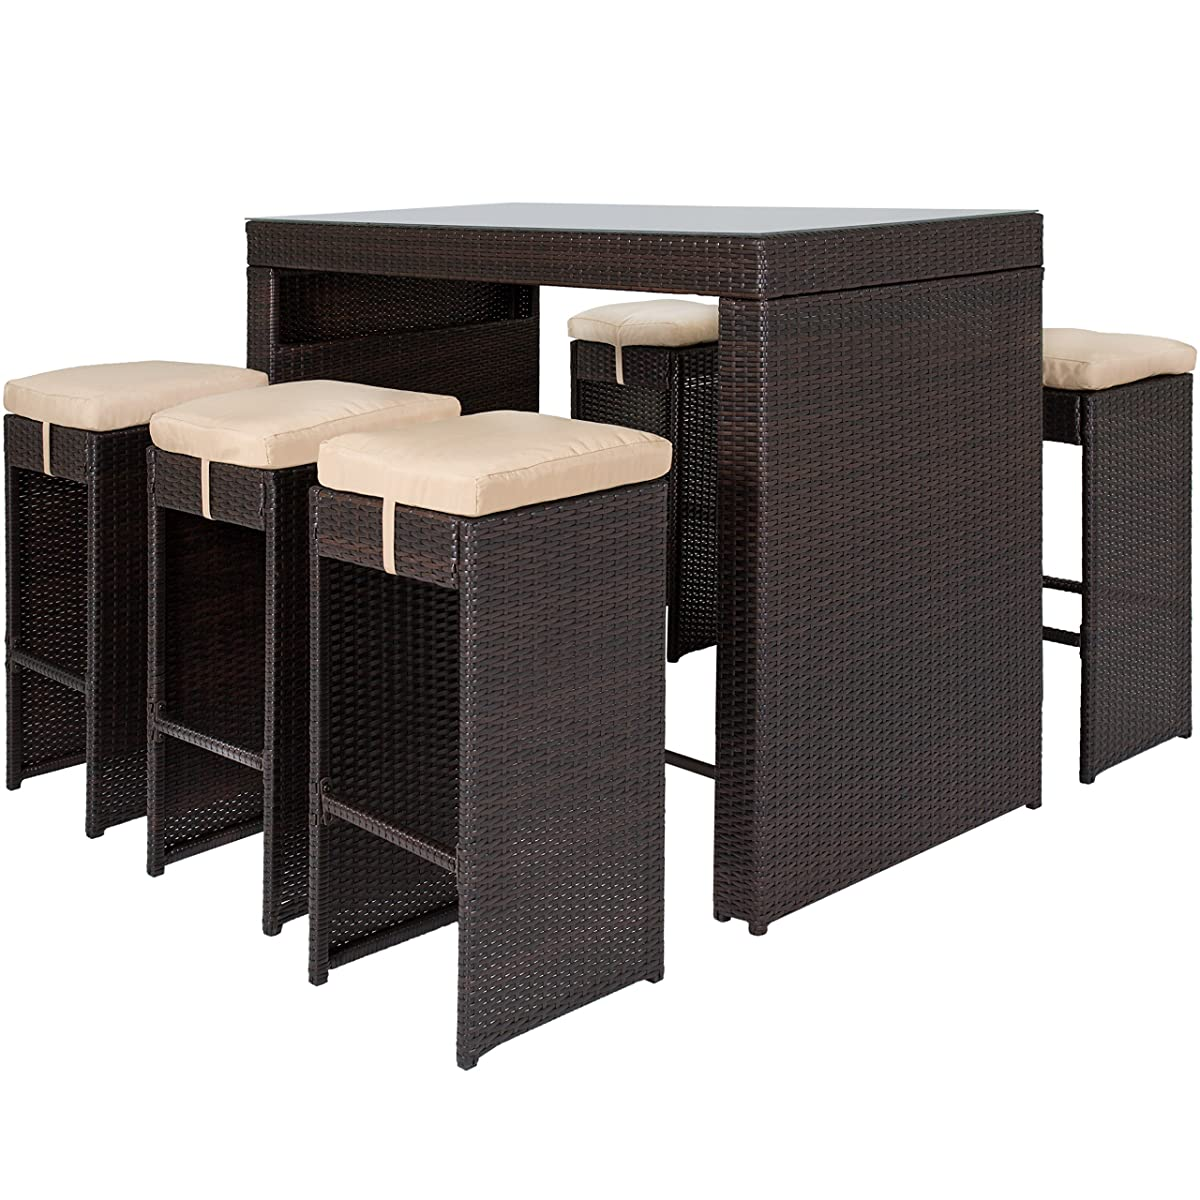 Best Choice Products 7-Piece Outdoor Rattan Wicker Bar Dining Patio Furniture Set w/ Glass Table Top, 6 Stools - Brown